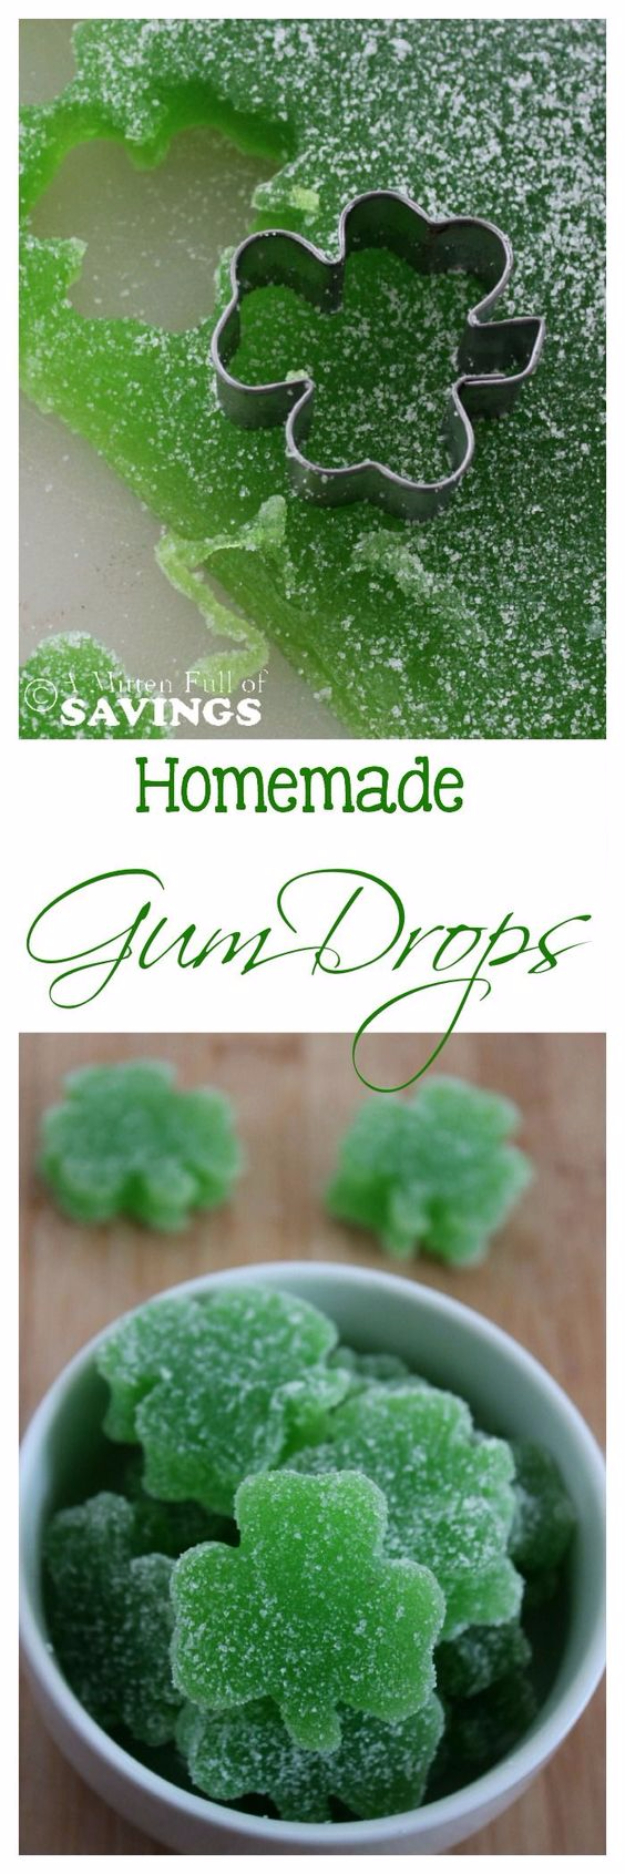 DIY St Patricks Day Ideas - Homemade Gum Drops - Food and Best Recipes, Decorations and Home Decor, Party Ideas - Cupcakes, Drinks, Festive St Patrick Day Parties With these Easy, Quick and Cool Crafts and DIY Projects http://diyjoy.com/st-patricks-day-ideas